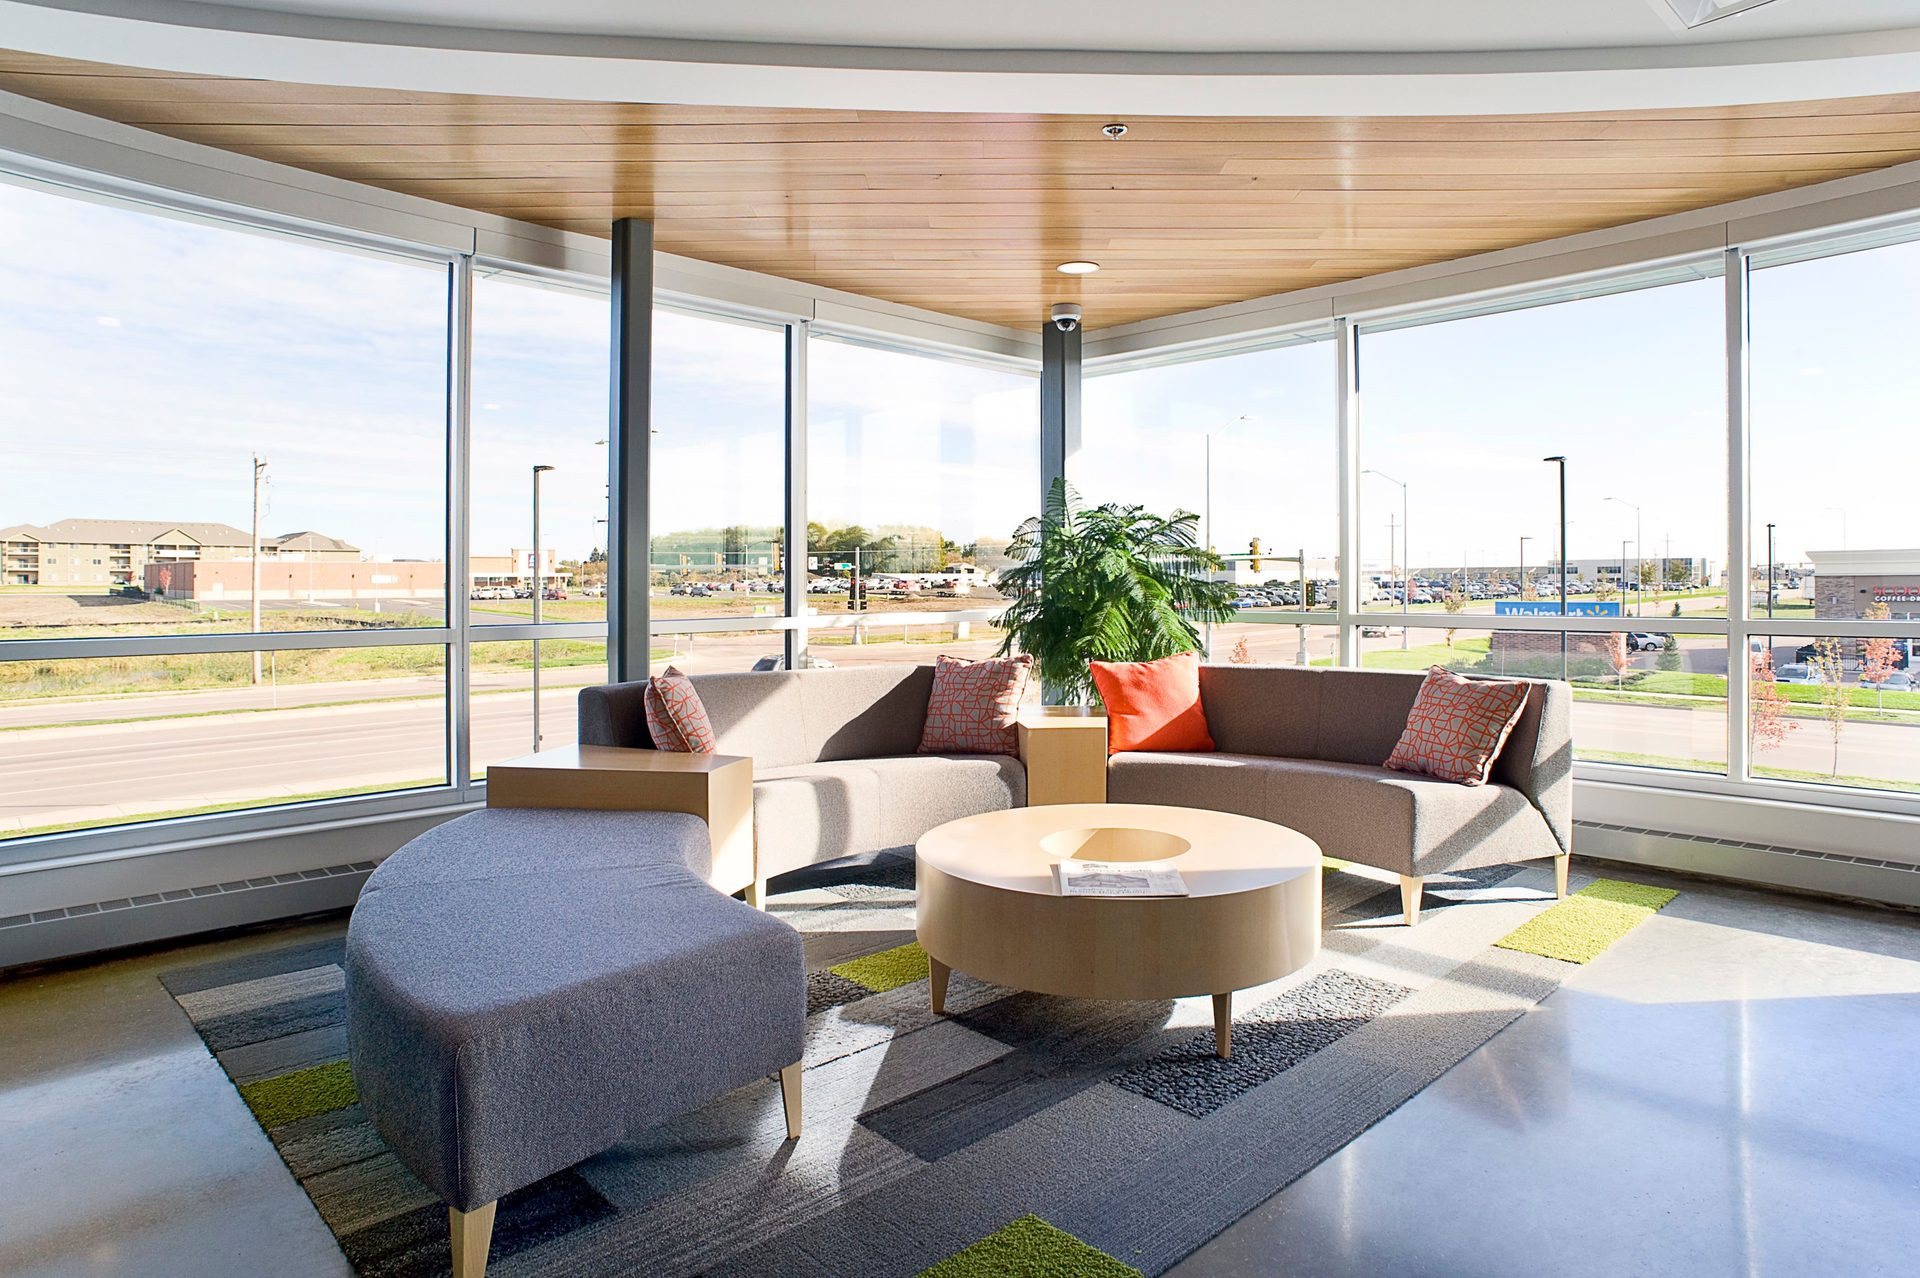 A beautiful, sunfilled waiting area at Reliabank Mortgage in Sioux Fall, South Dakota with interior design work completed by Lenae Design.